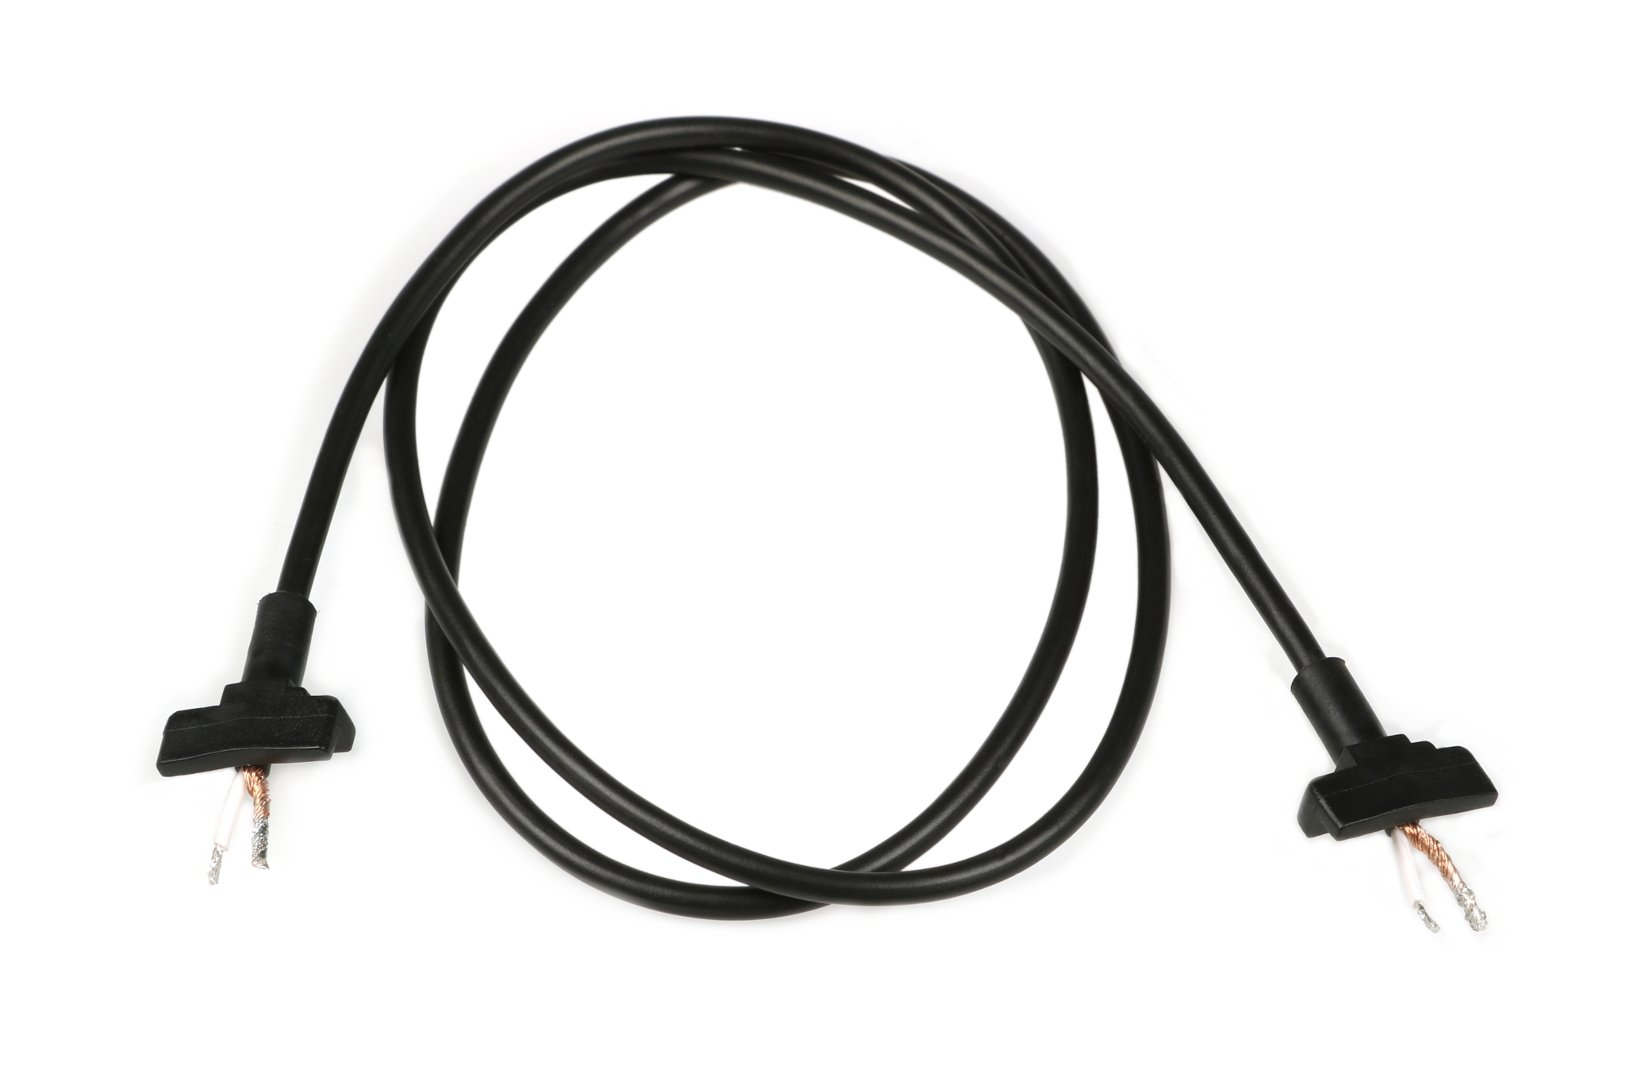 Beyerdynamic 925.626 DT108 and DT109 Replacement Headband Cable 925.626